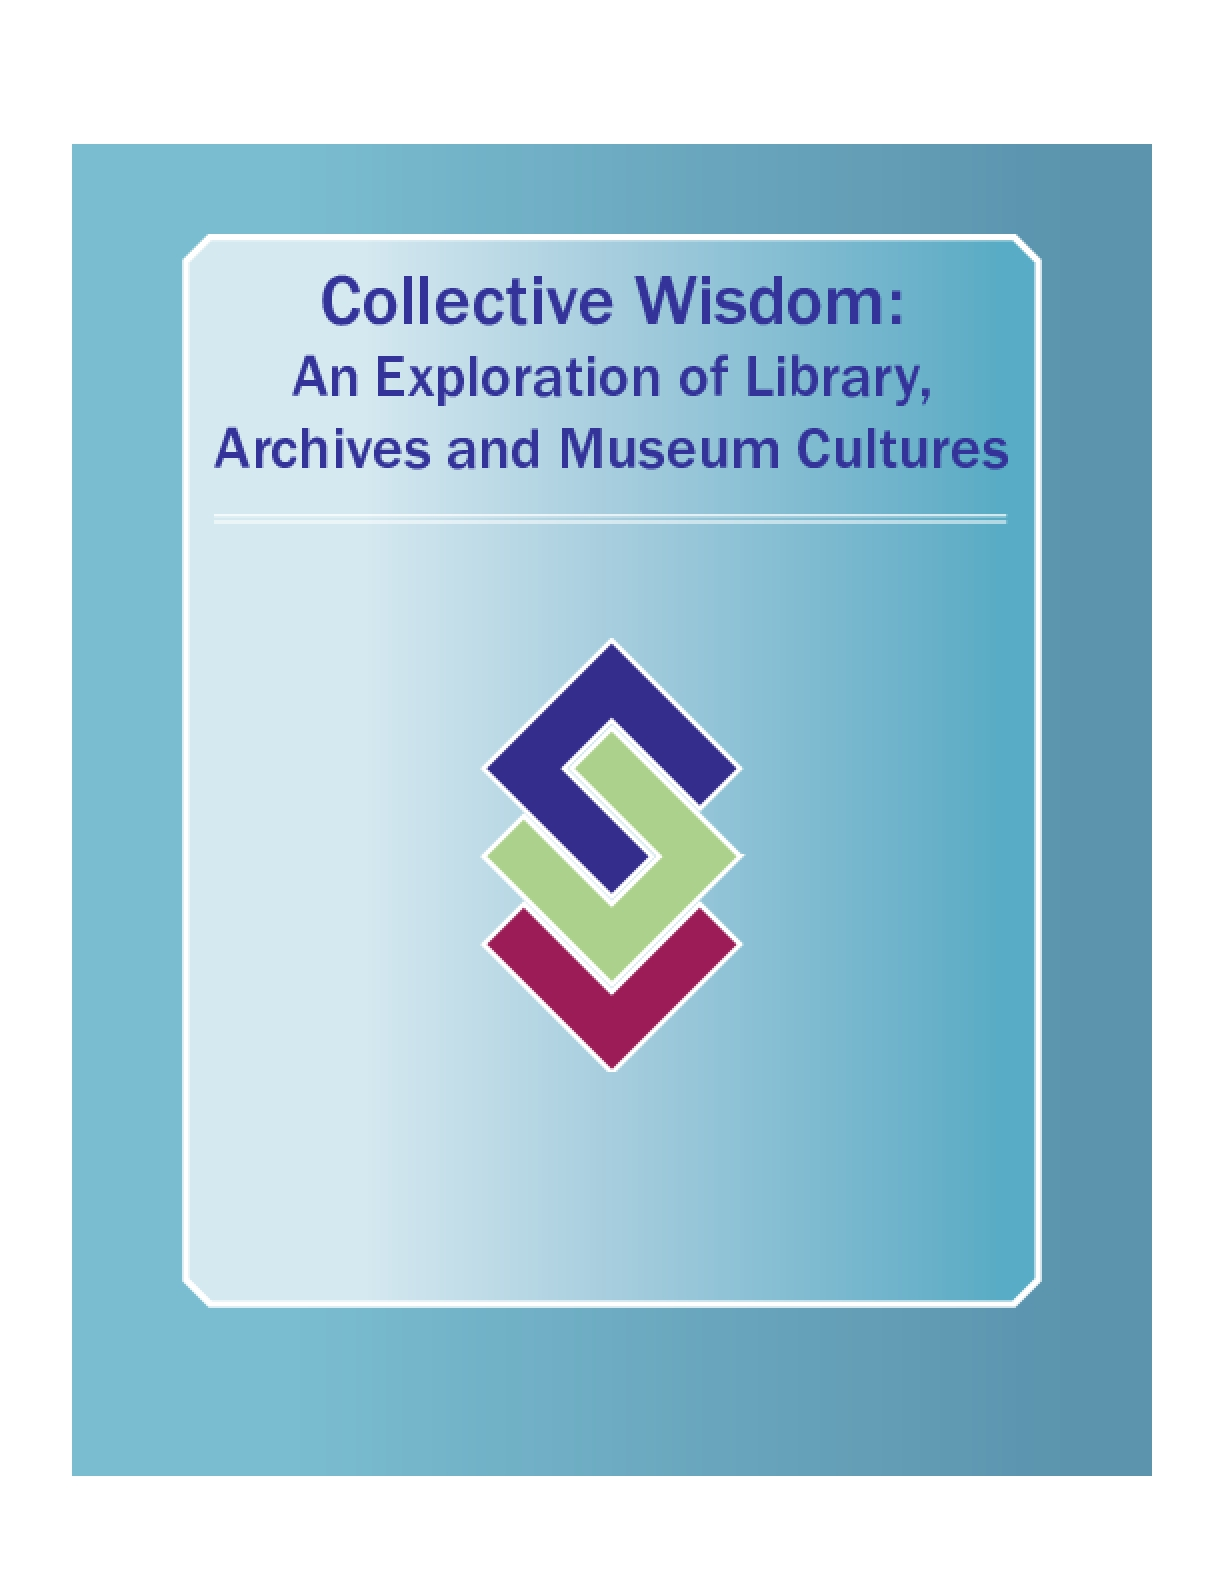 Collective Wisdom: An Exploration of Library, Archives and Museum Cultures